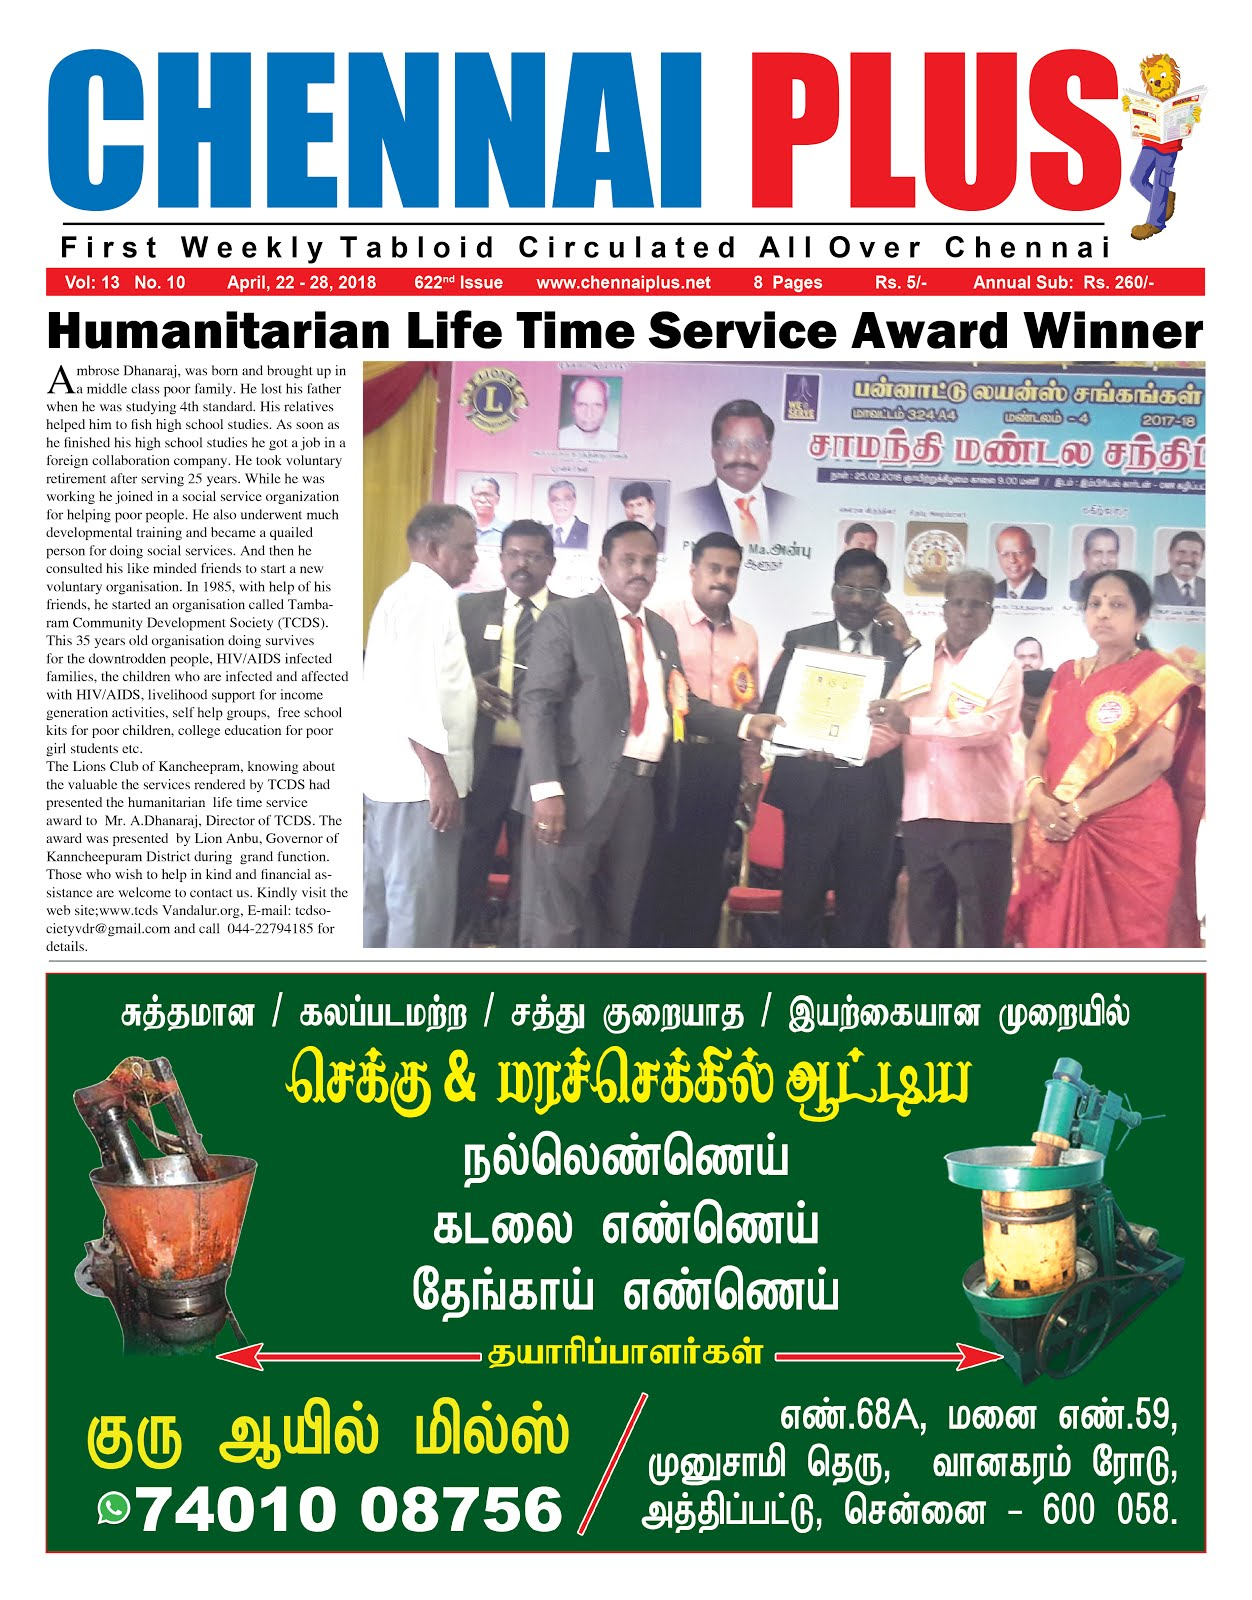 Chennai Plus_22.04.2018_Issue